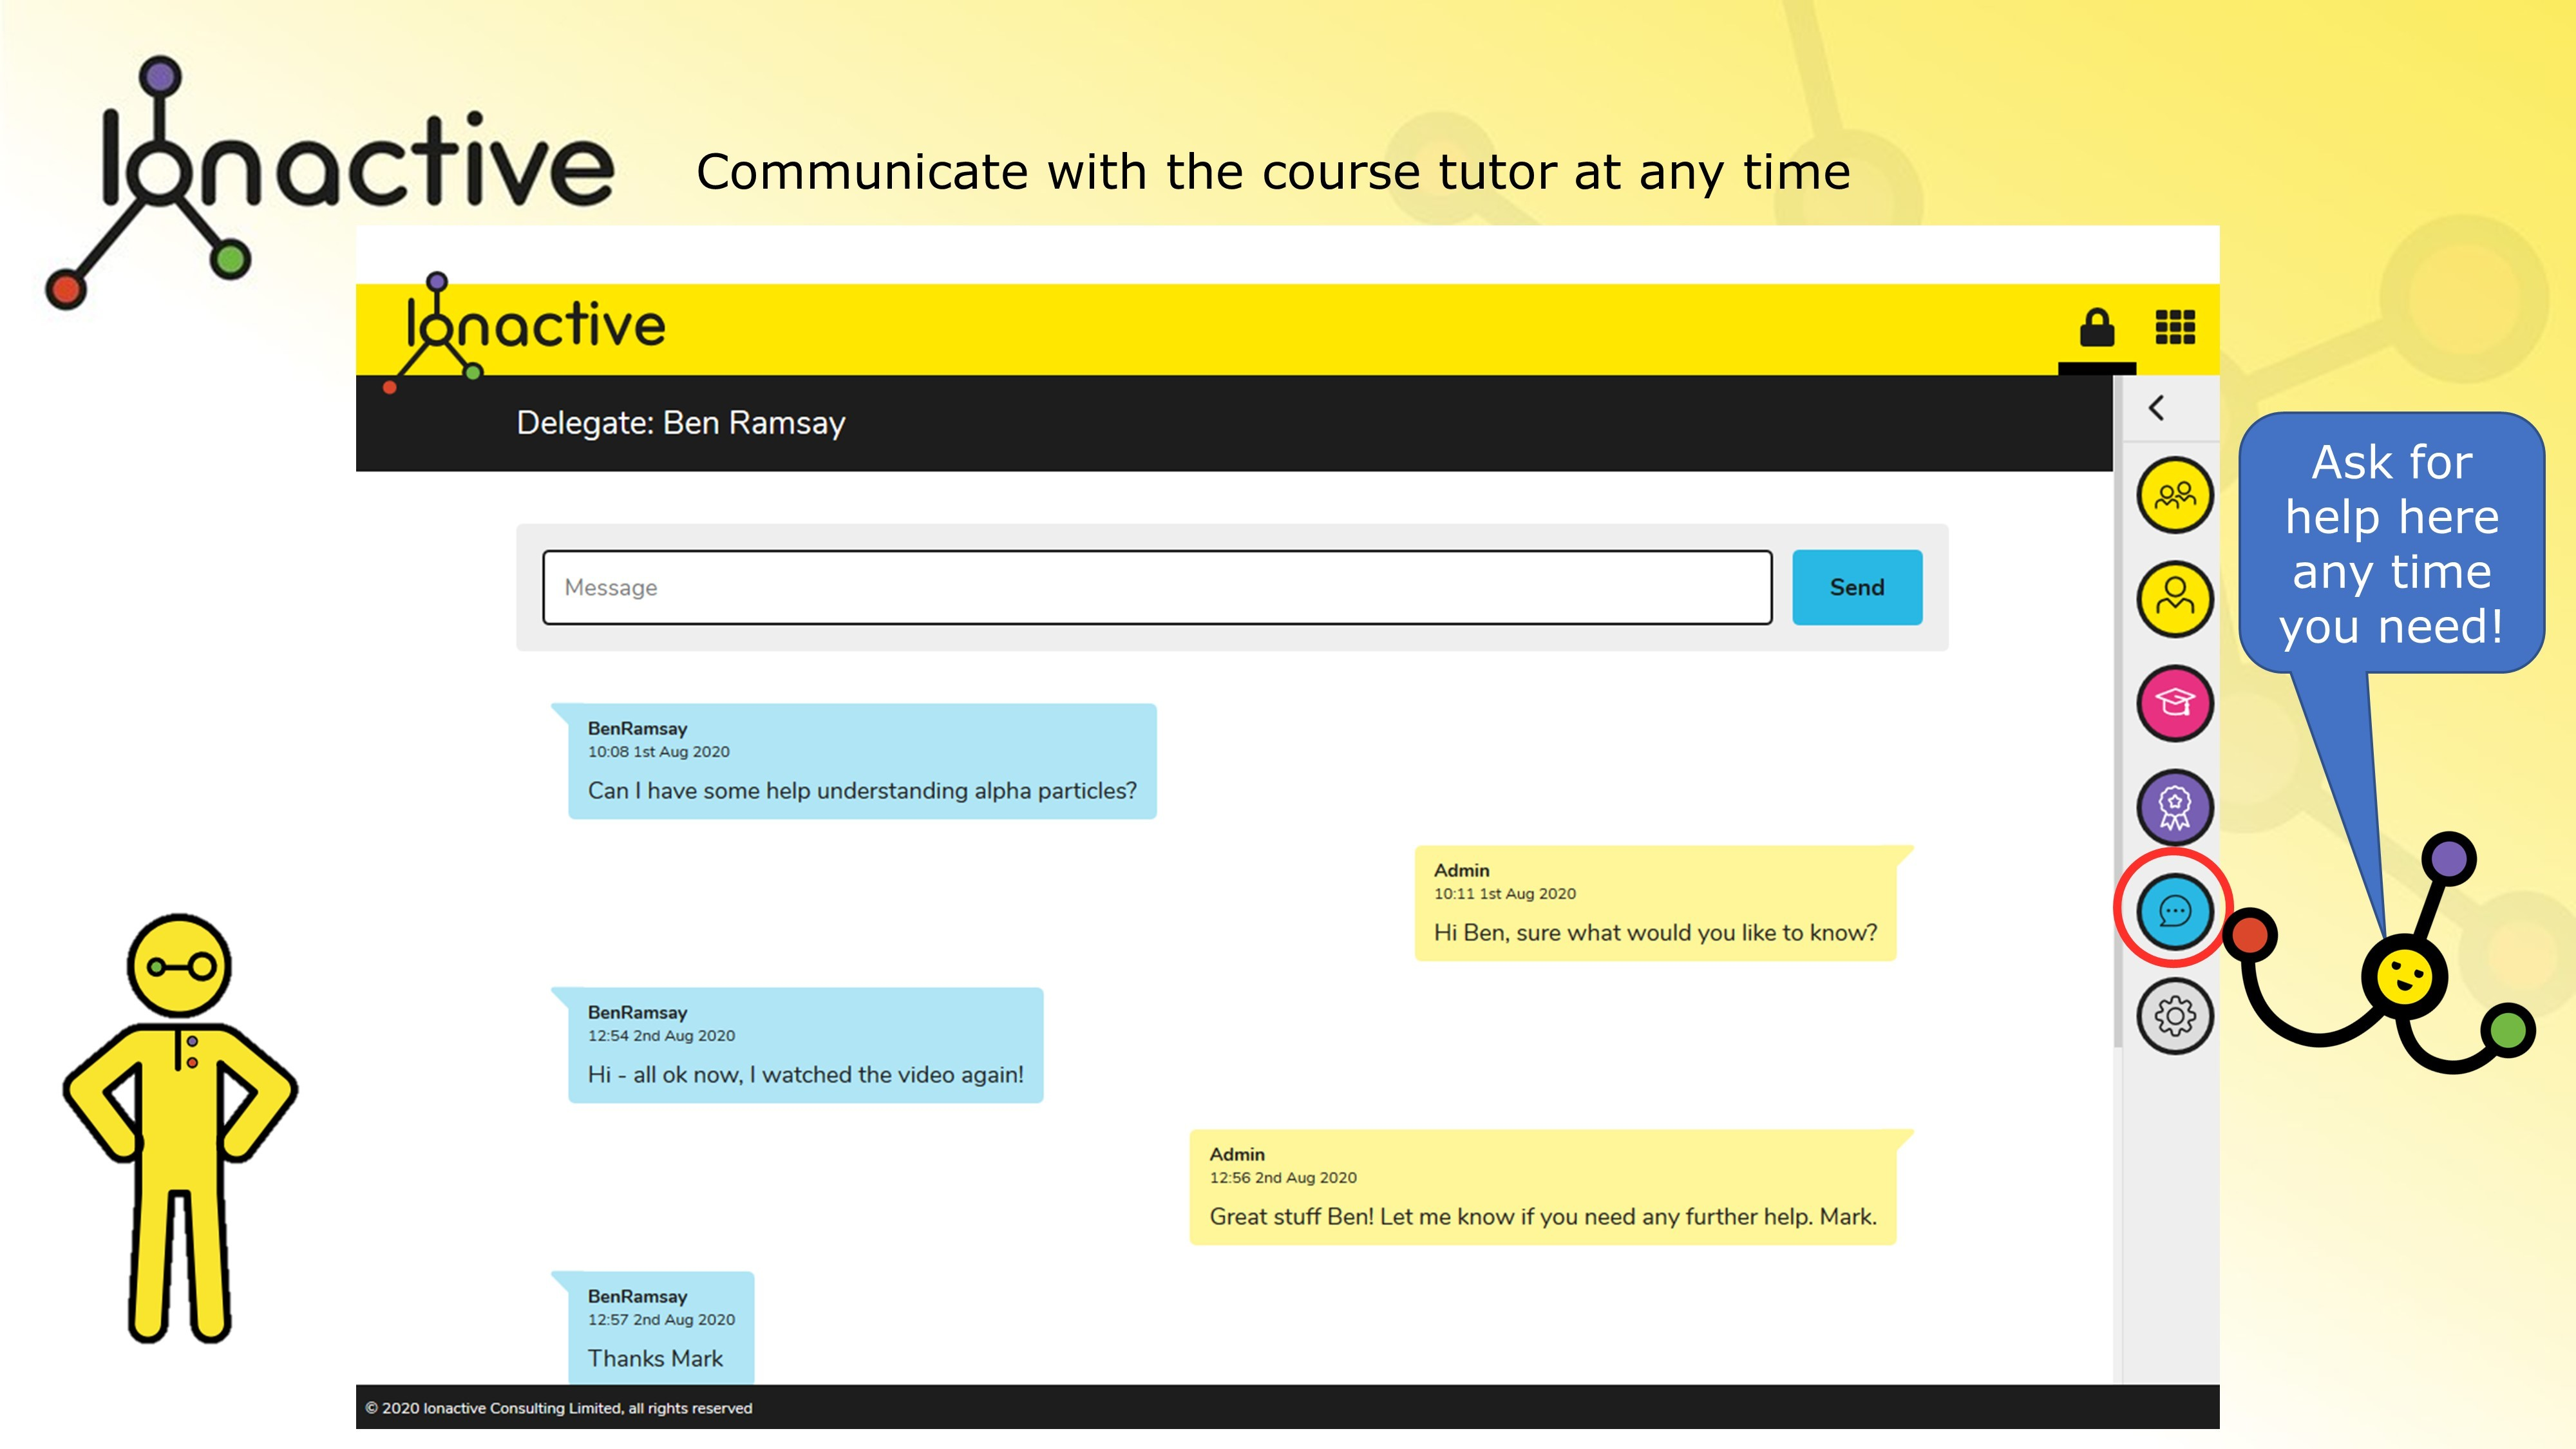 Chat with the tutor and ask for help direct from the course you are taking